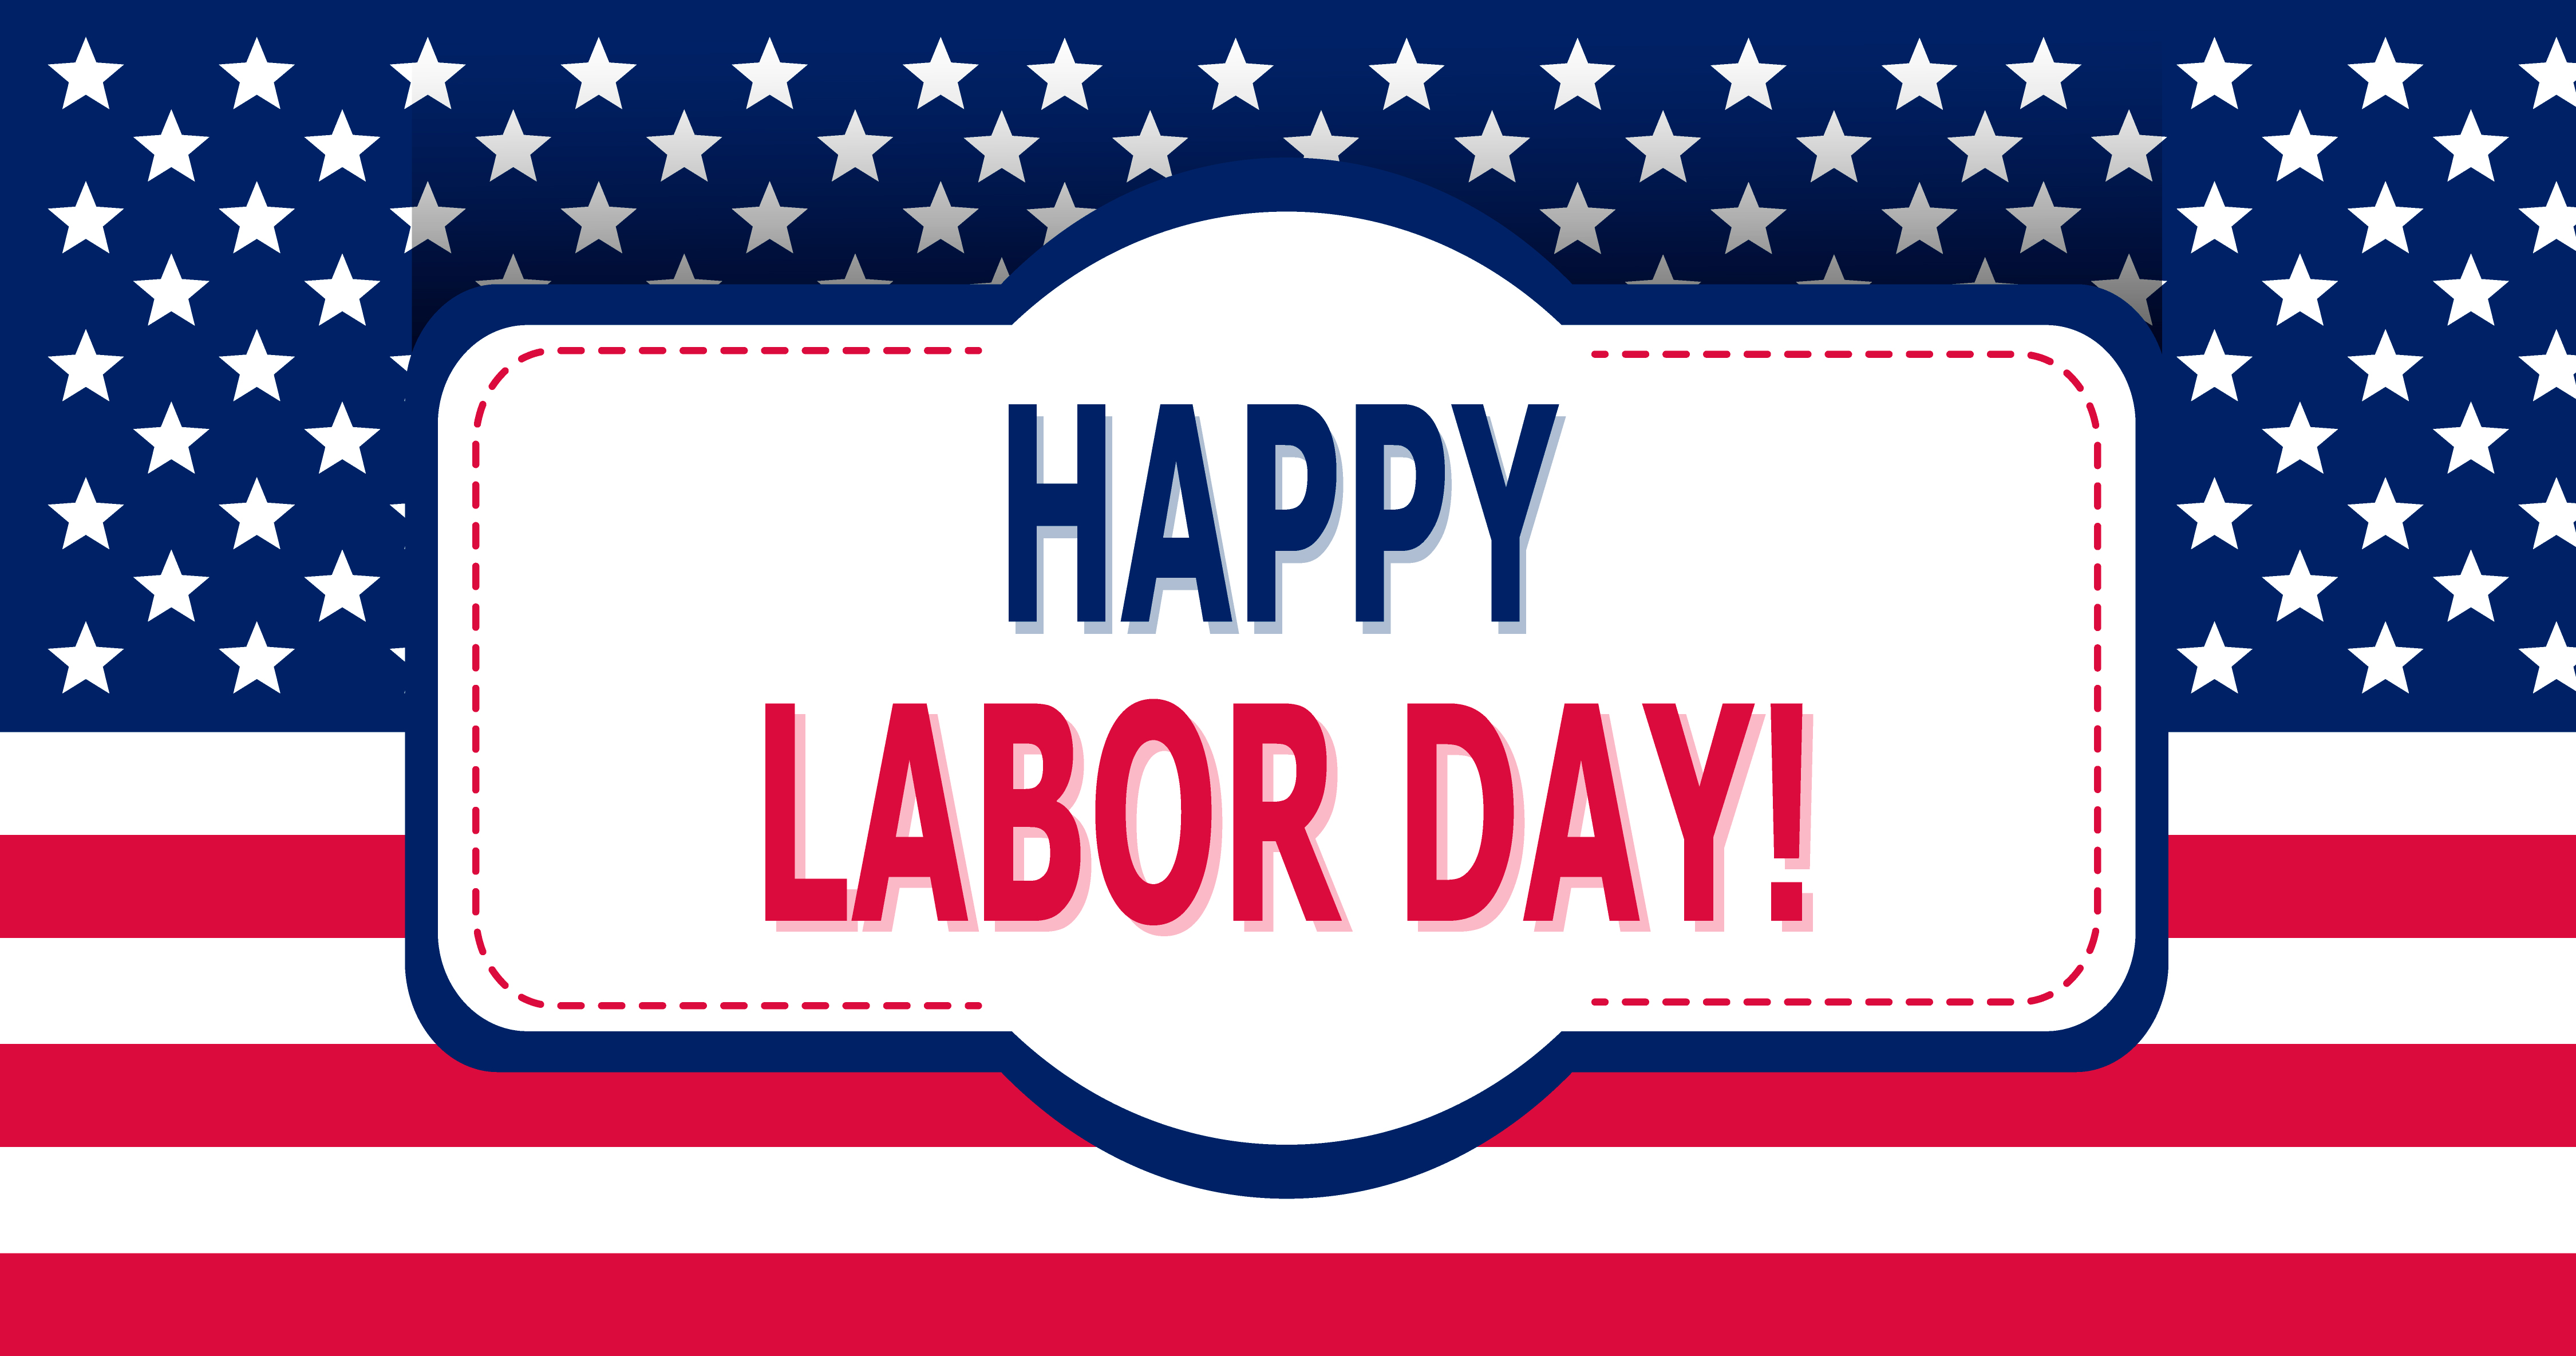 Happy Labor Day. Vector illustration. American flag. USA. Vintage style. Frame